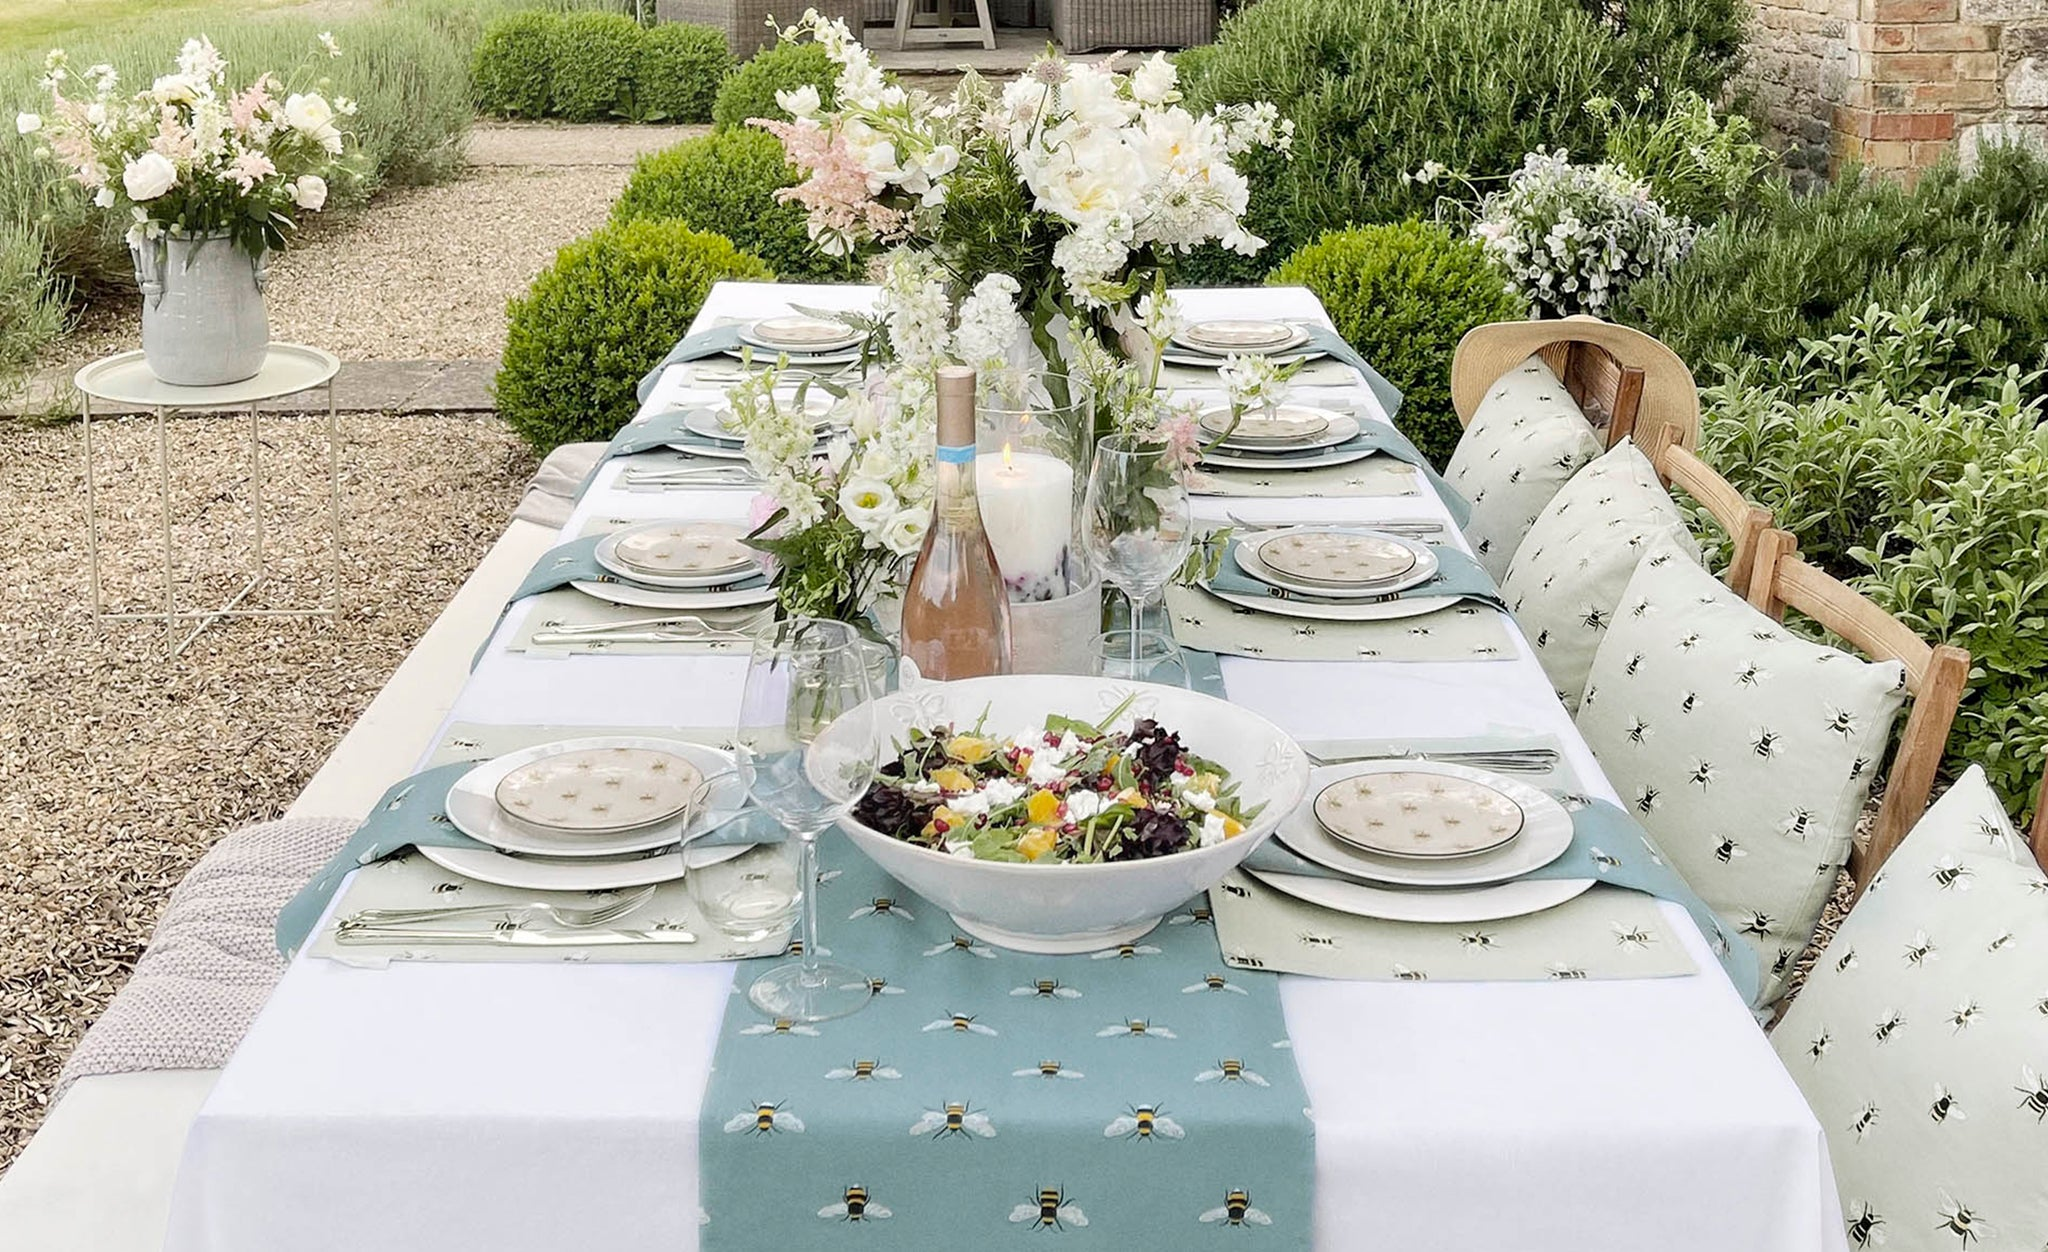 View All Table Setting